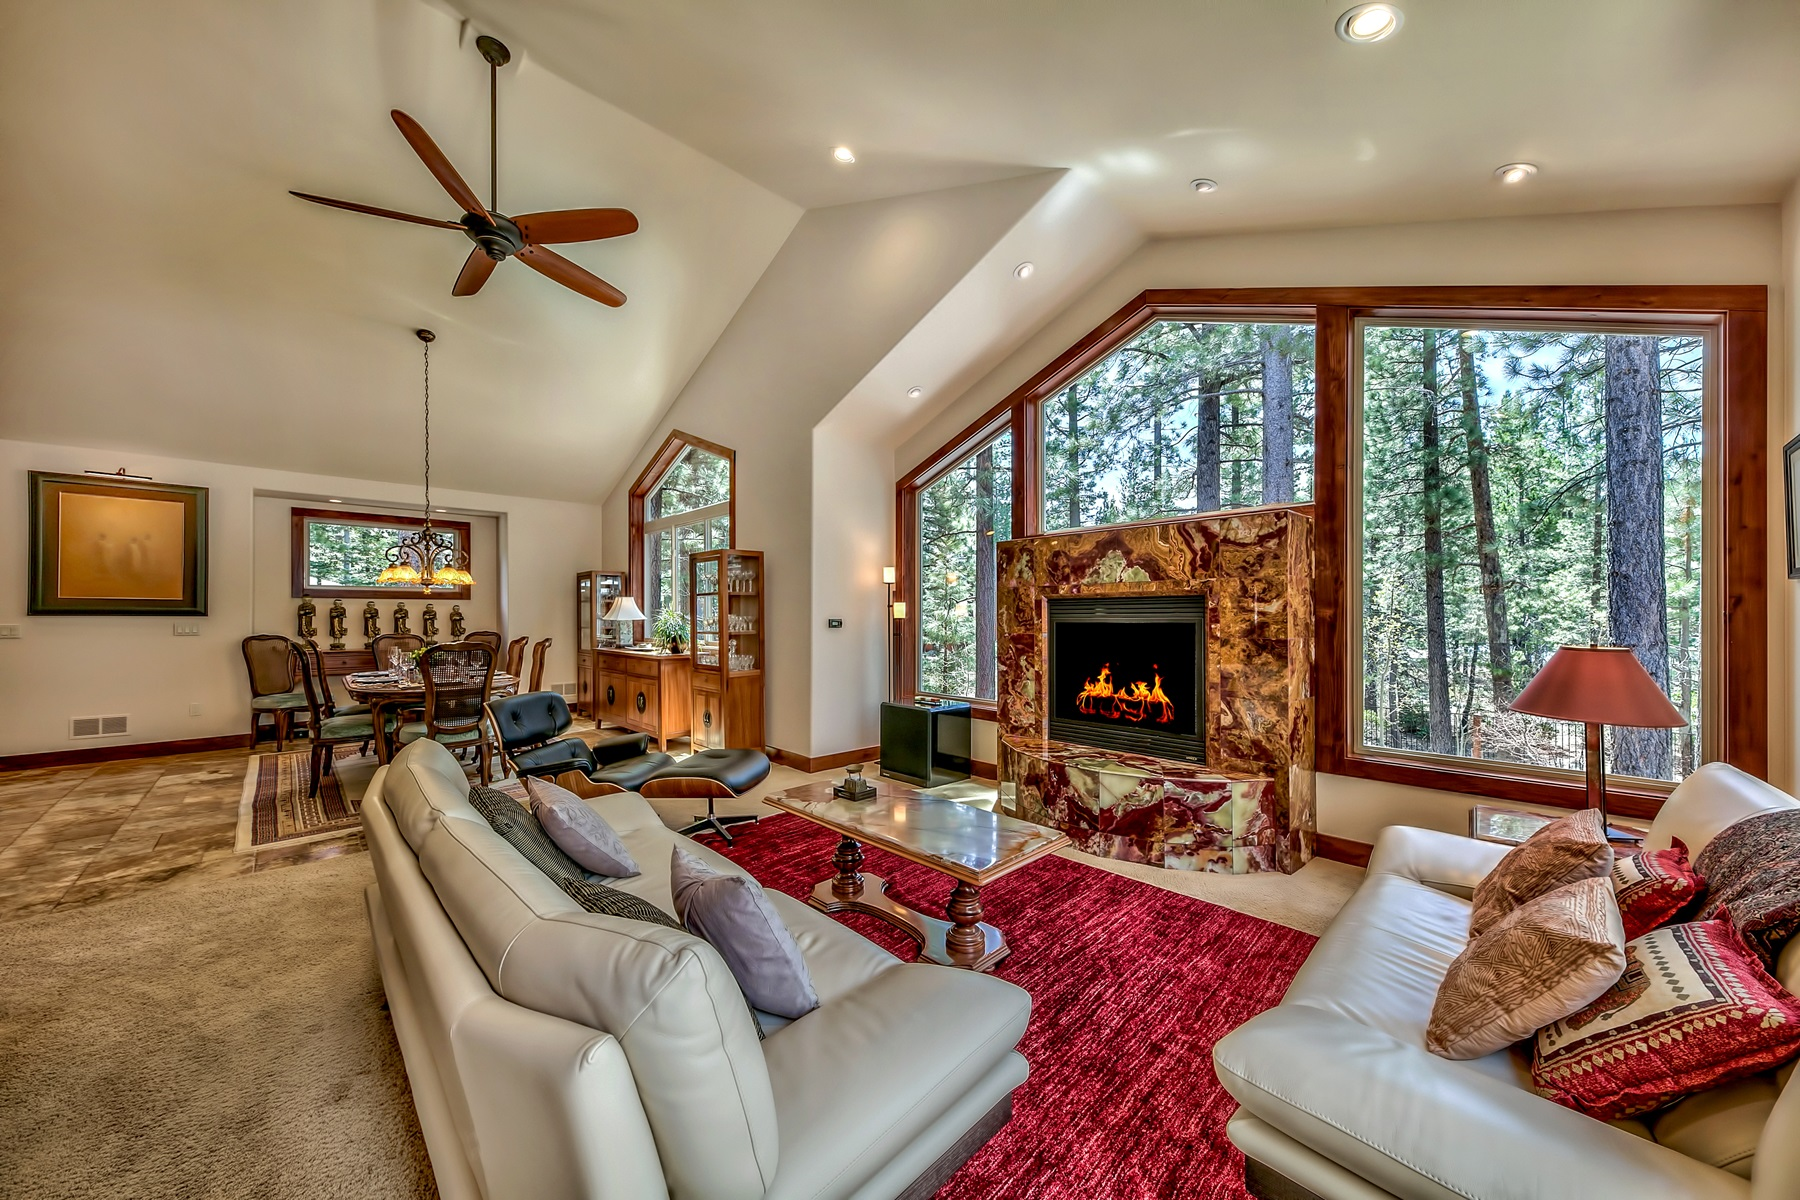 Additional photo for property listing at 642 Tehama Dr,South Lake Tahoe, CA  96150 642 Tehama Drive South Lake Tahoe, California 96150 United States